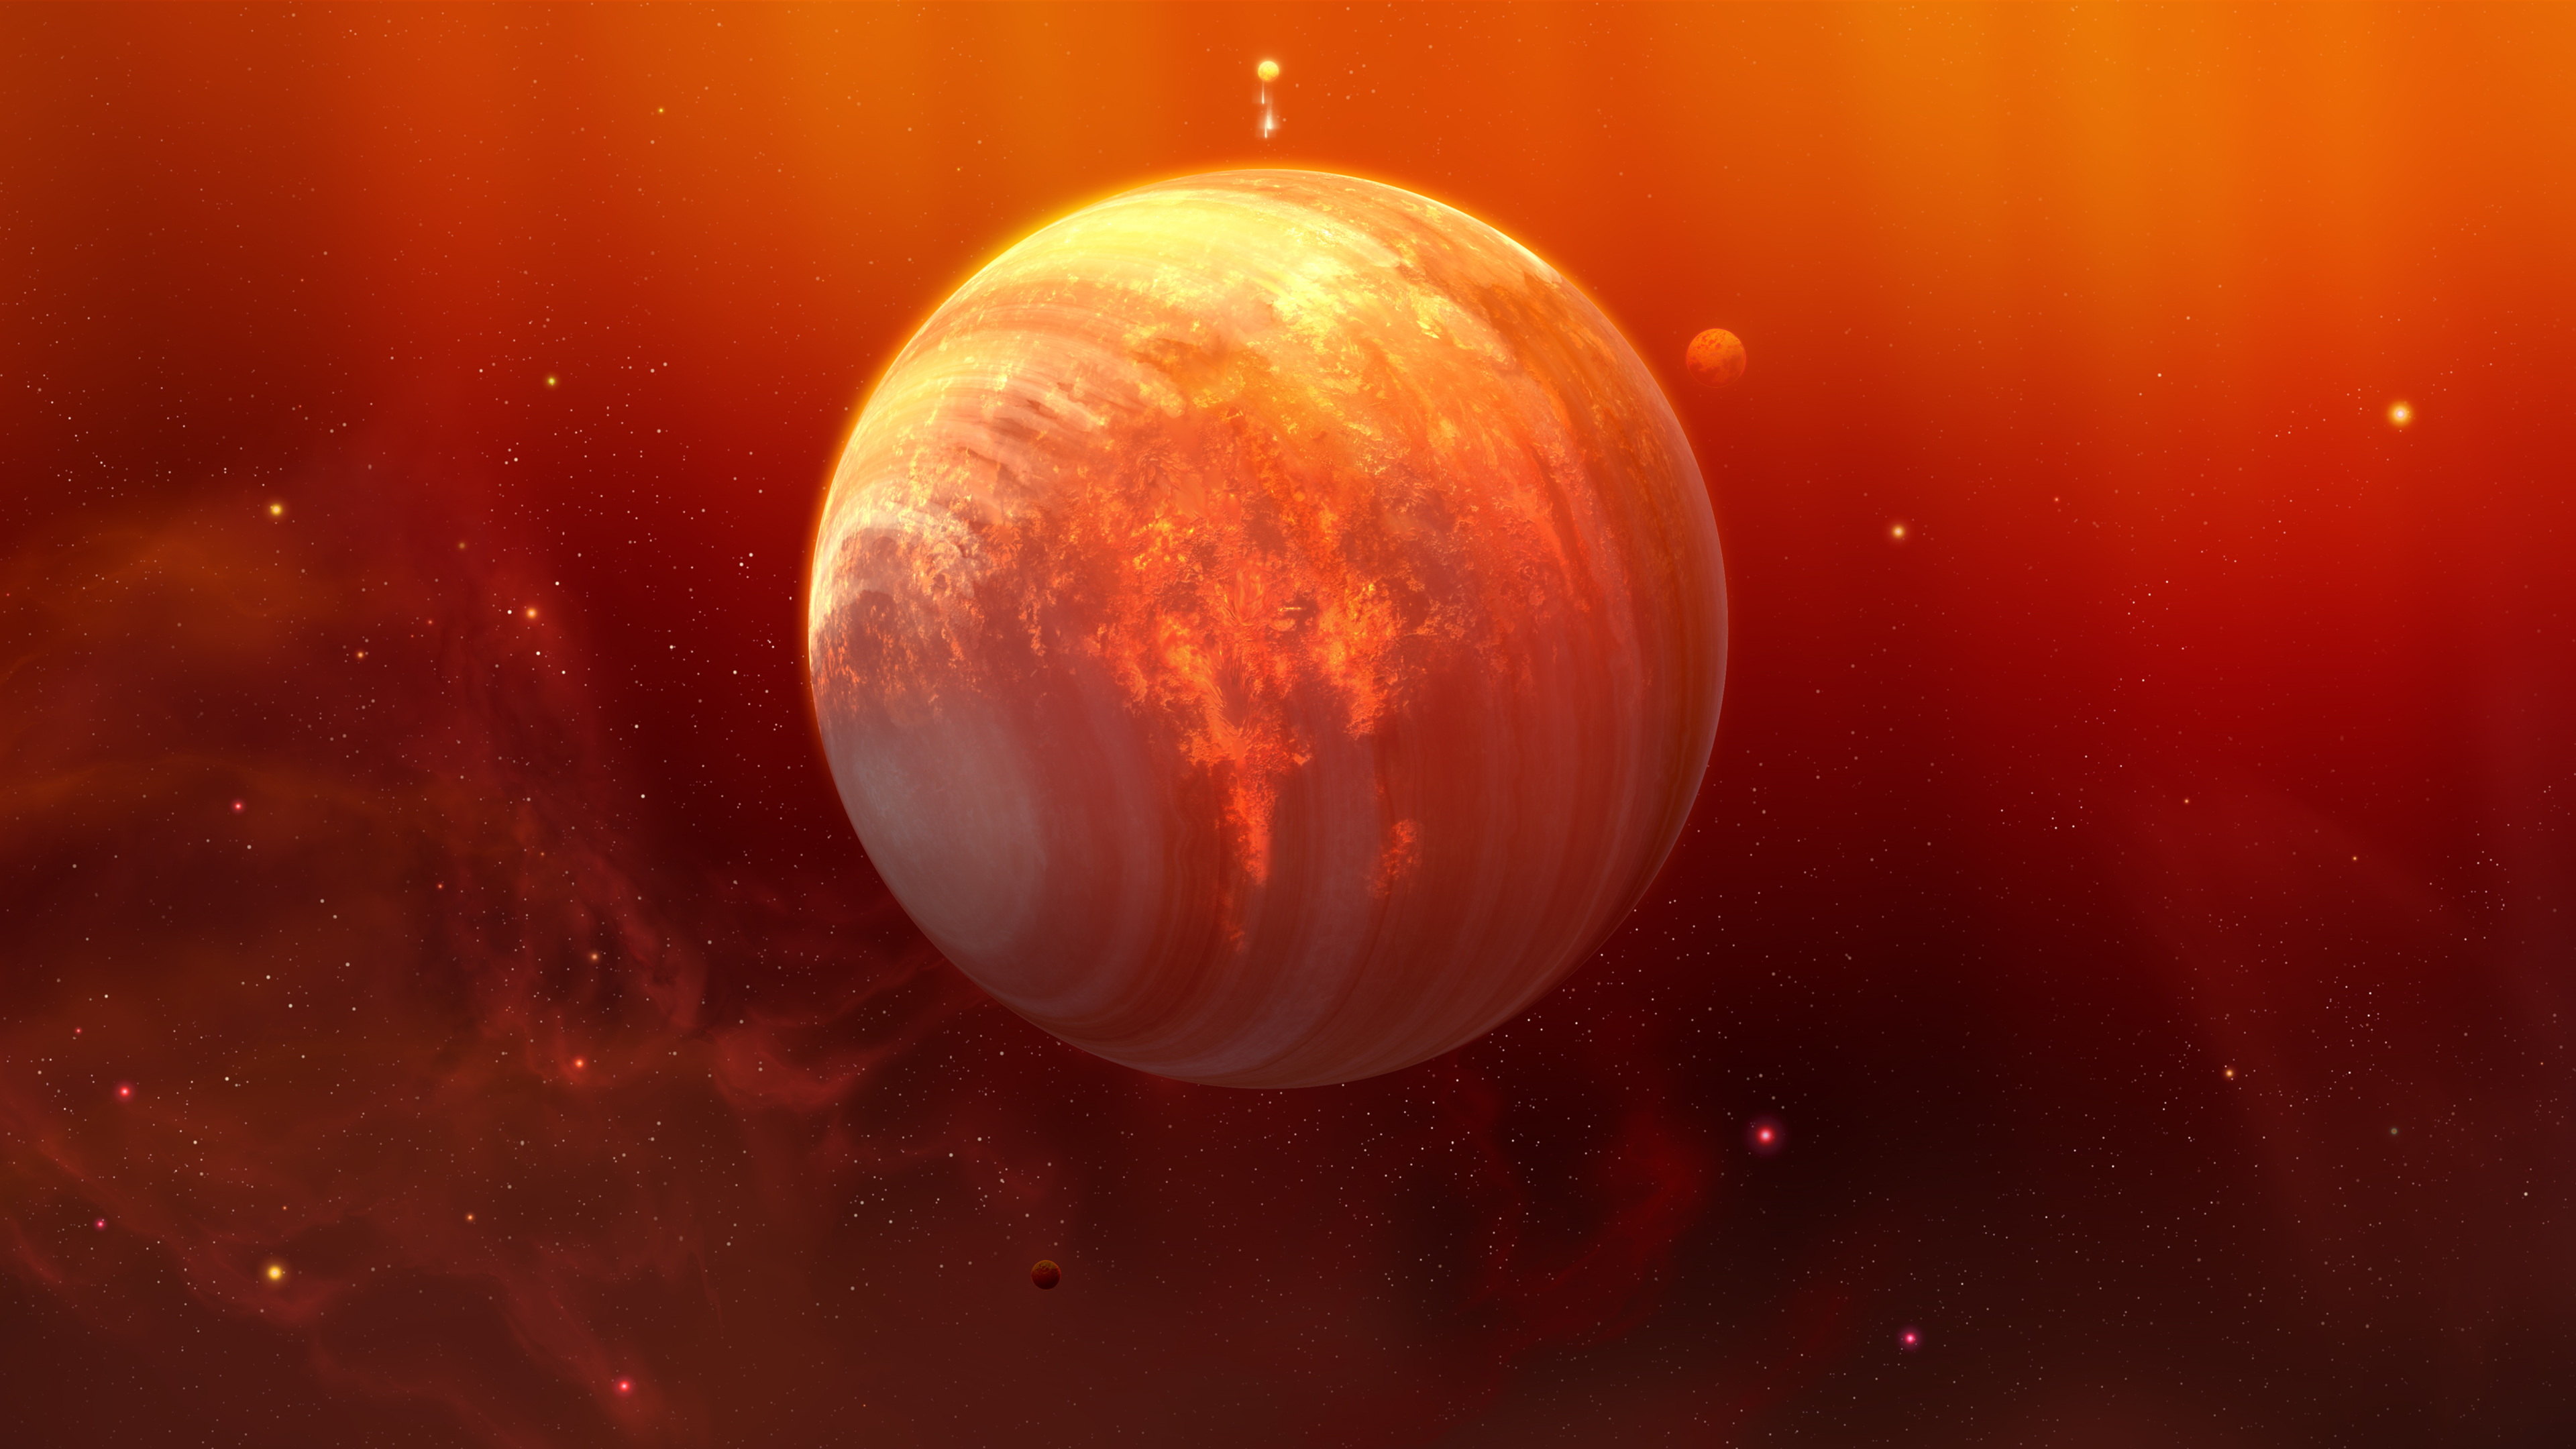 flaming planet 4k 1546279220 - Flaming Planet 4k - planet wallpapers, hd-wallpapers, digital universe wallpapers, digital art wallpapers, deviantart wallpapers, artwork wallpapers, artist wallpapers, 5k wallpapers, 4k-wallpapers